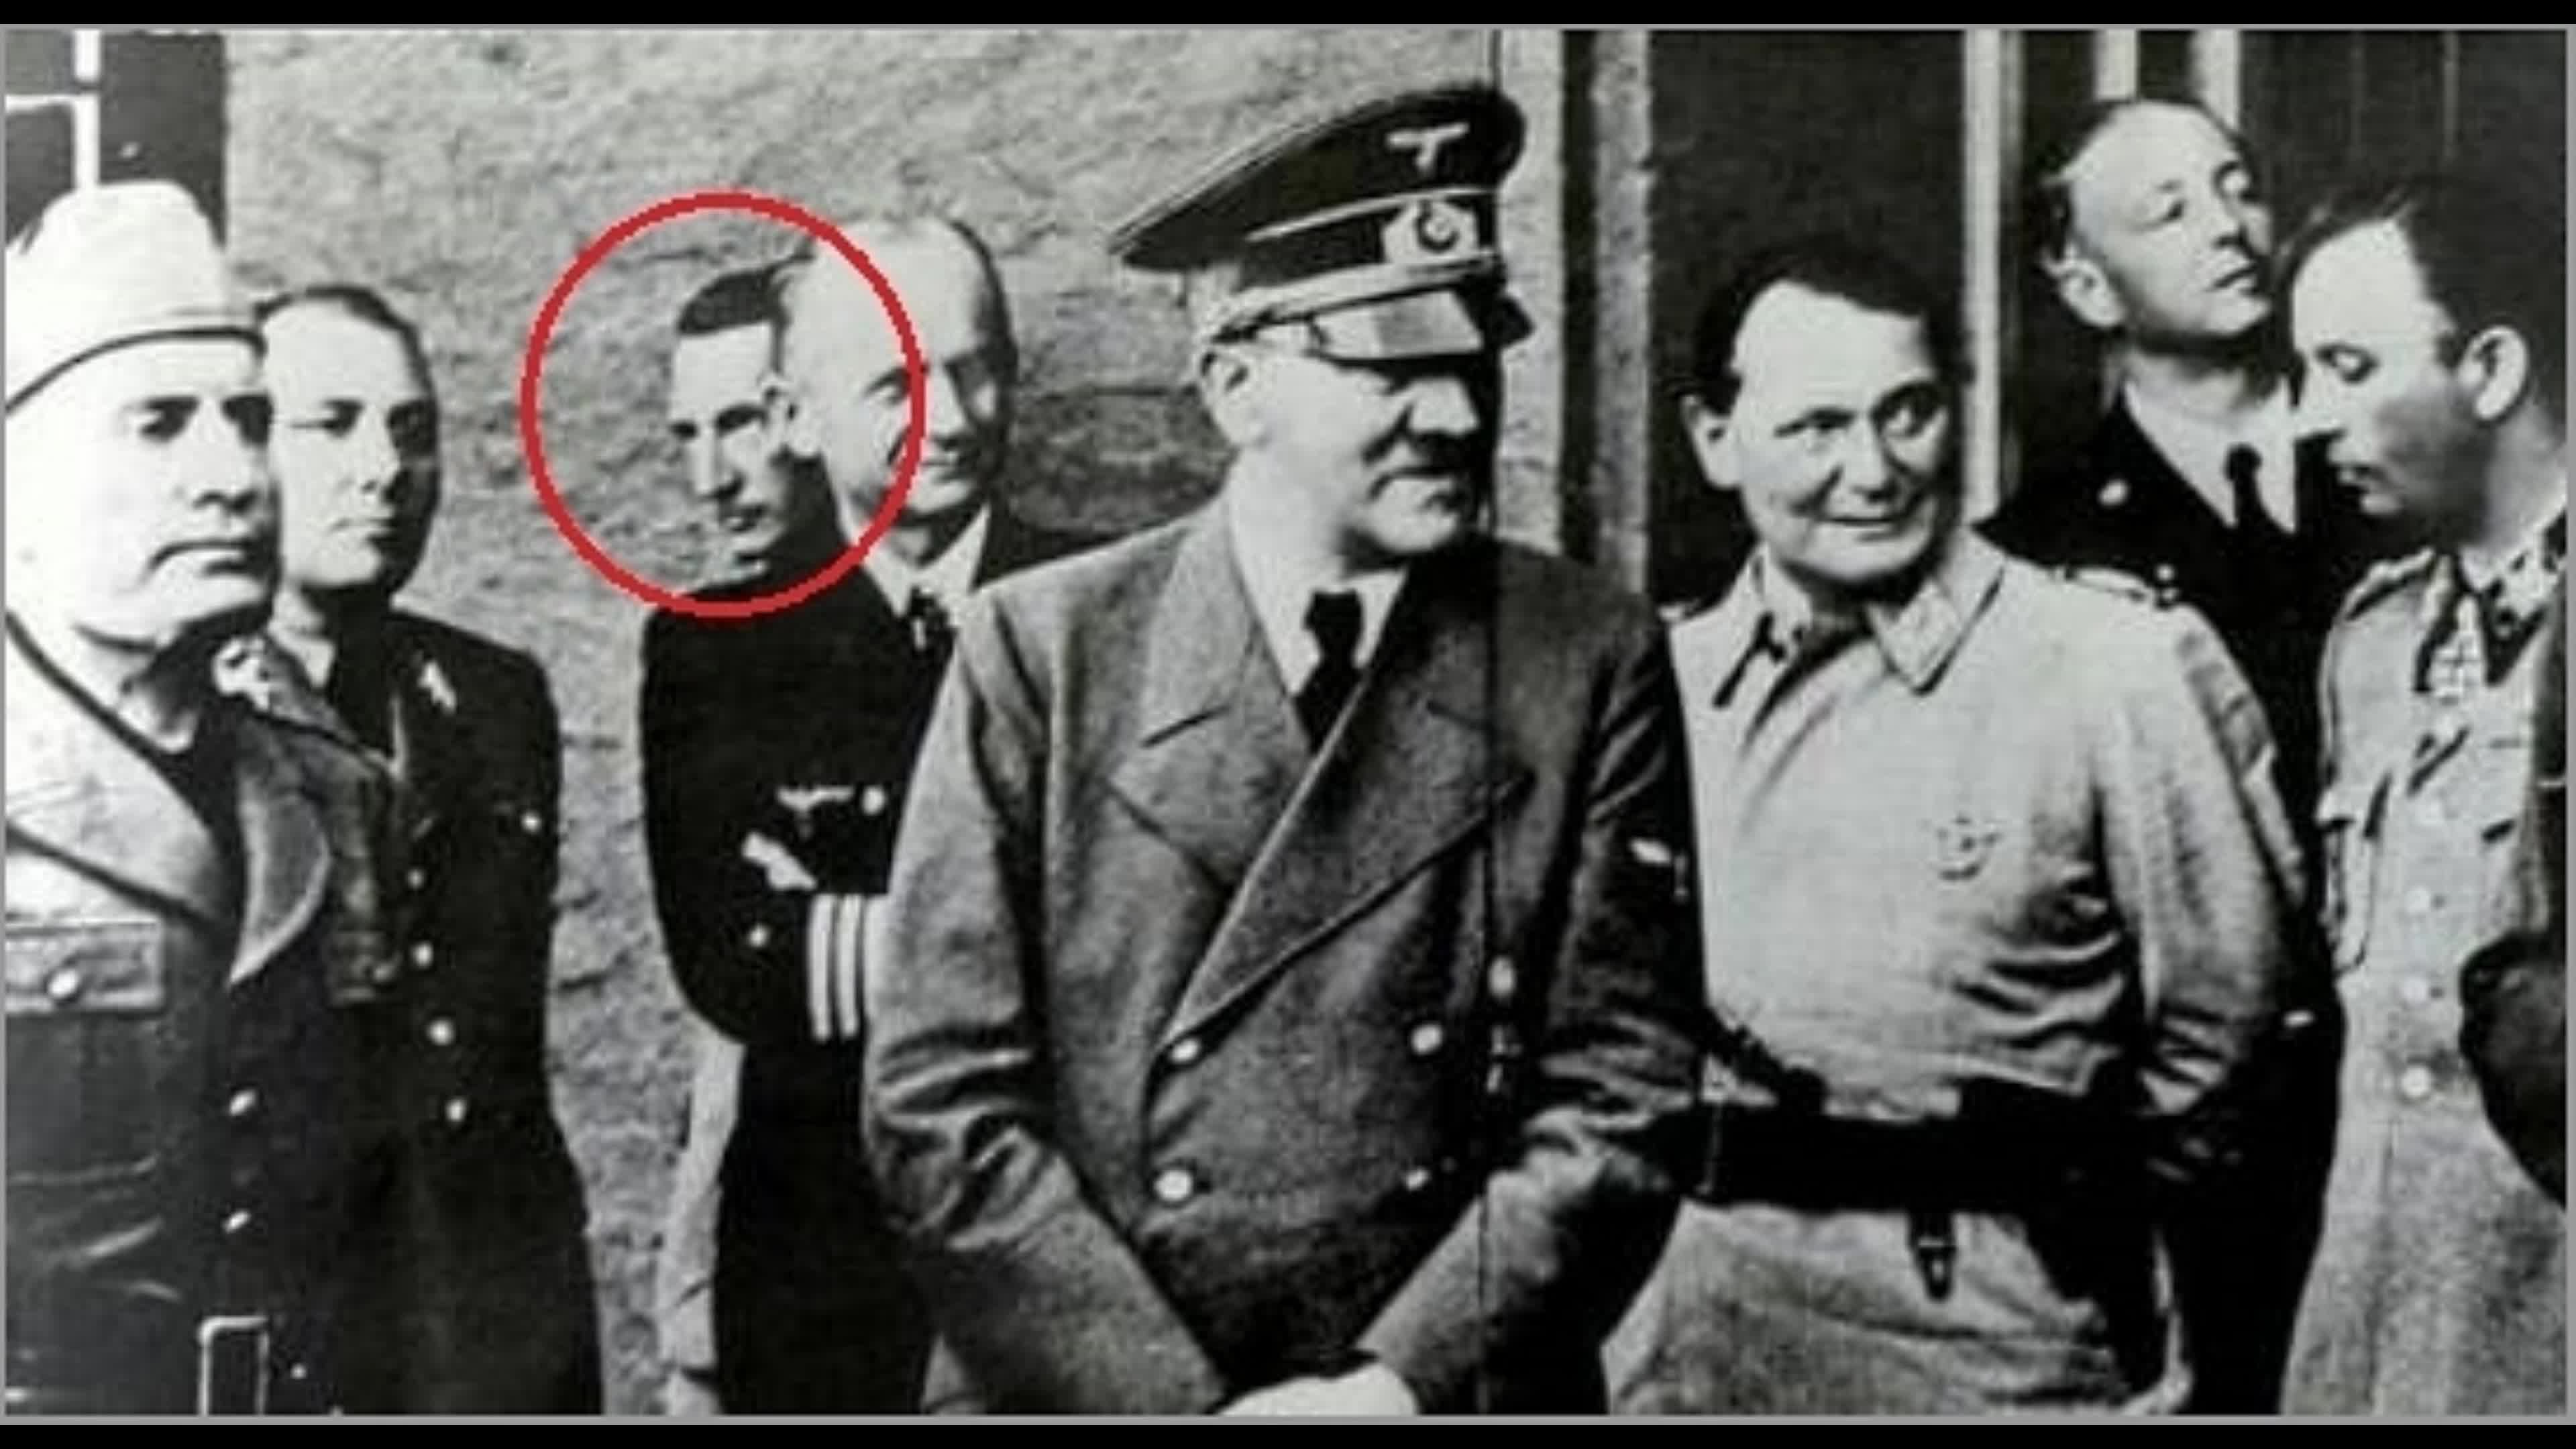 Report to  Himmler on Evola